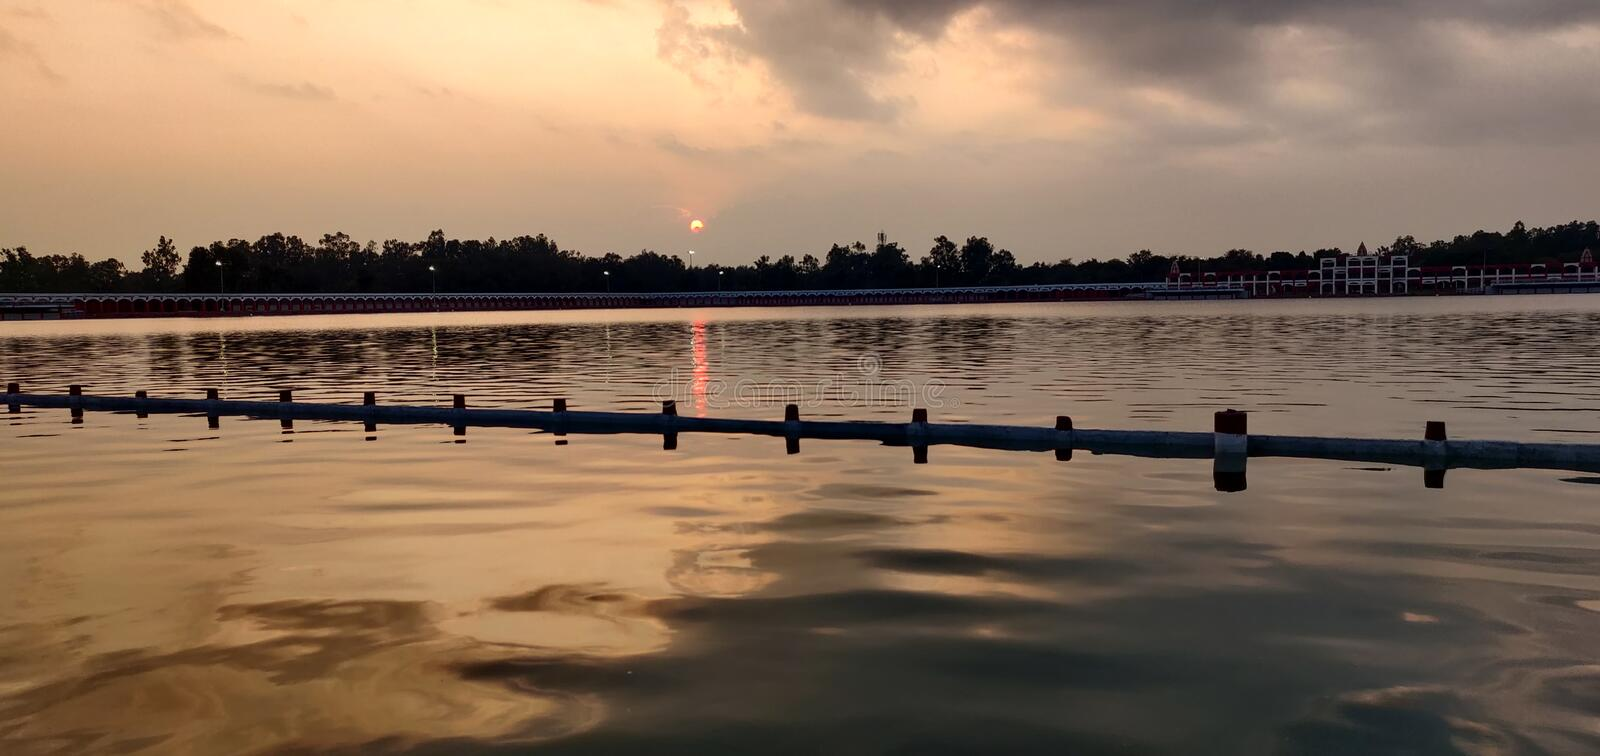 Water reflection view with sun royalty free stock photography